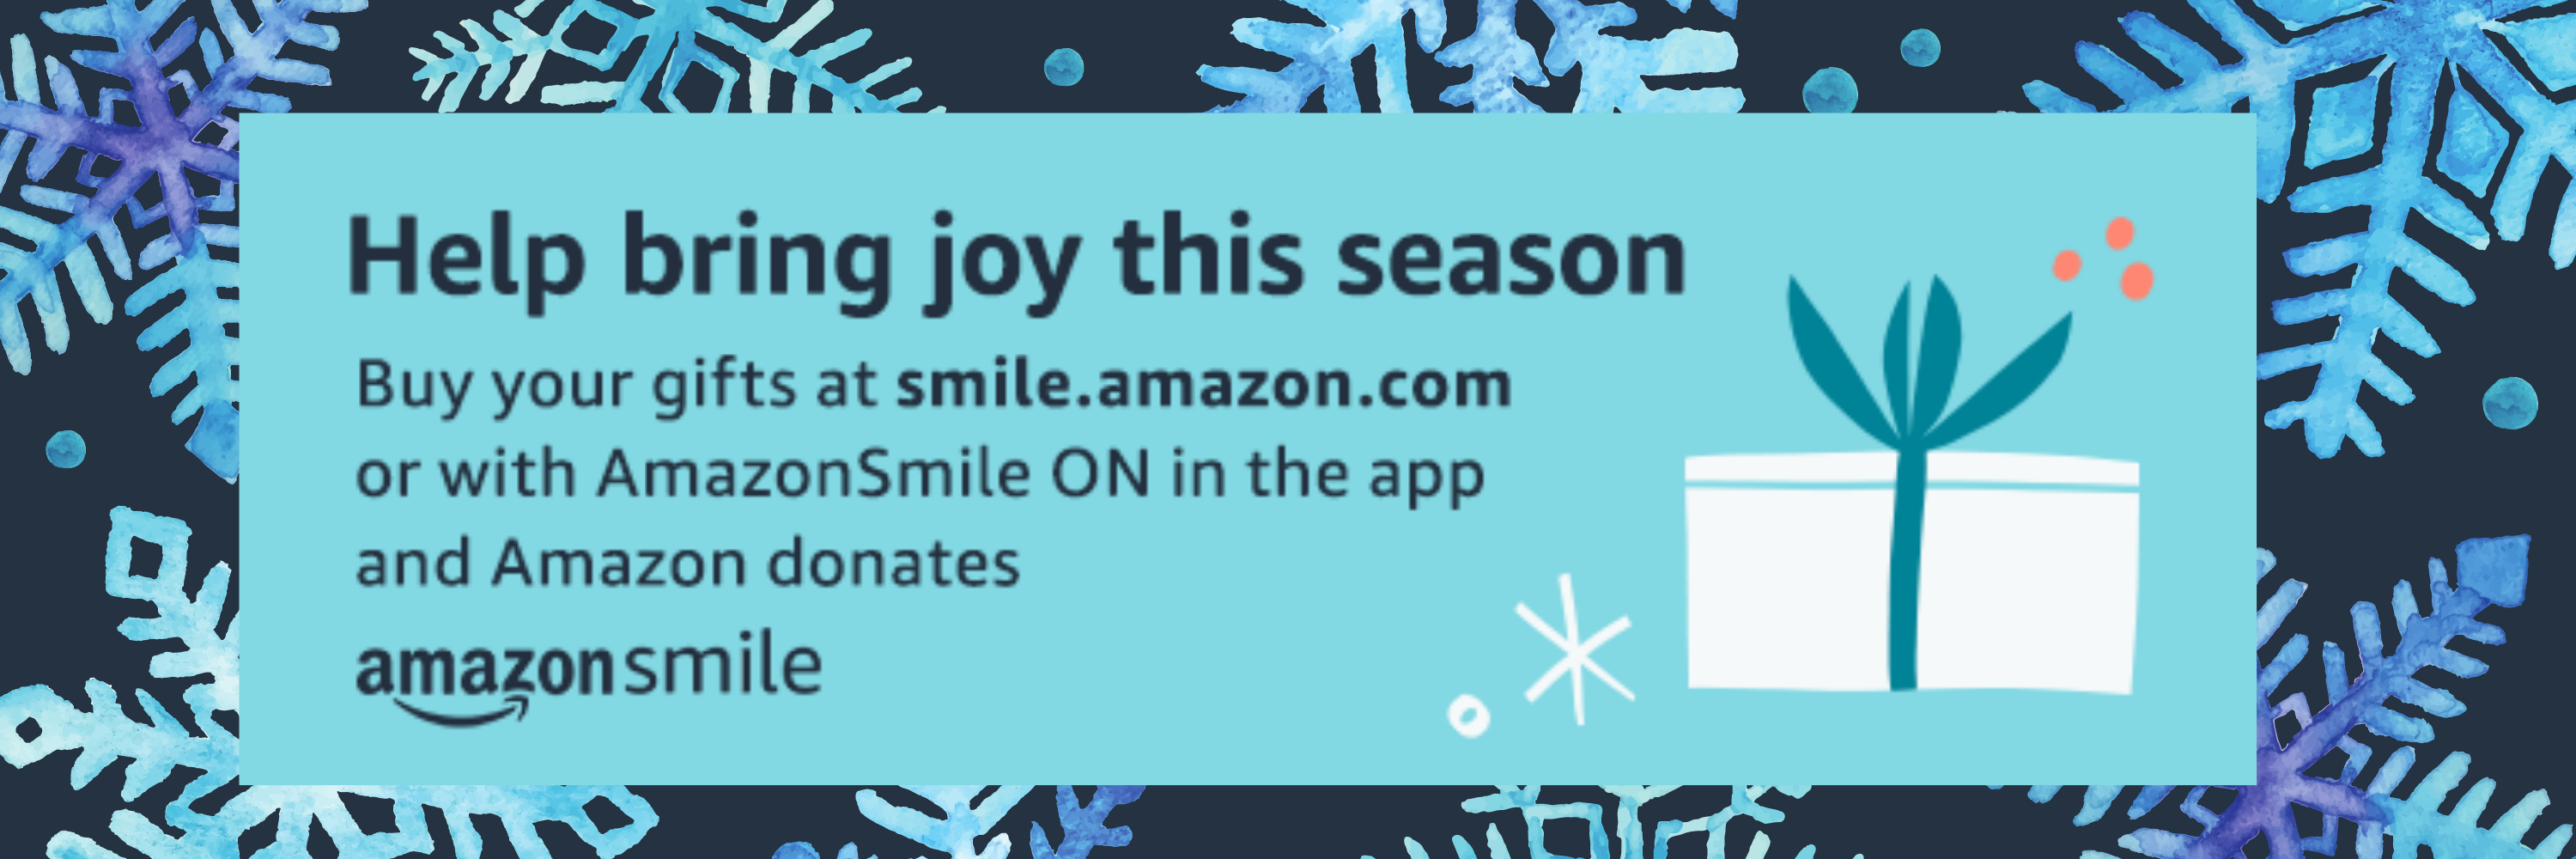 Buy your gifts at smile.amazon.com